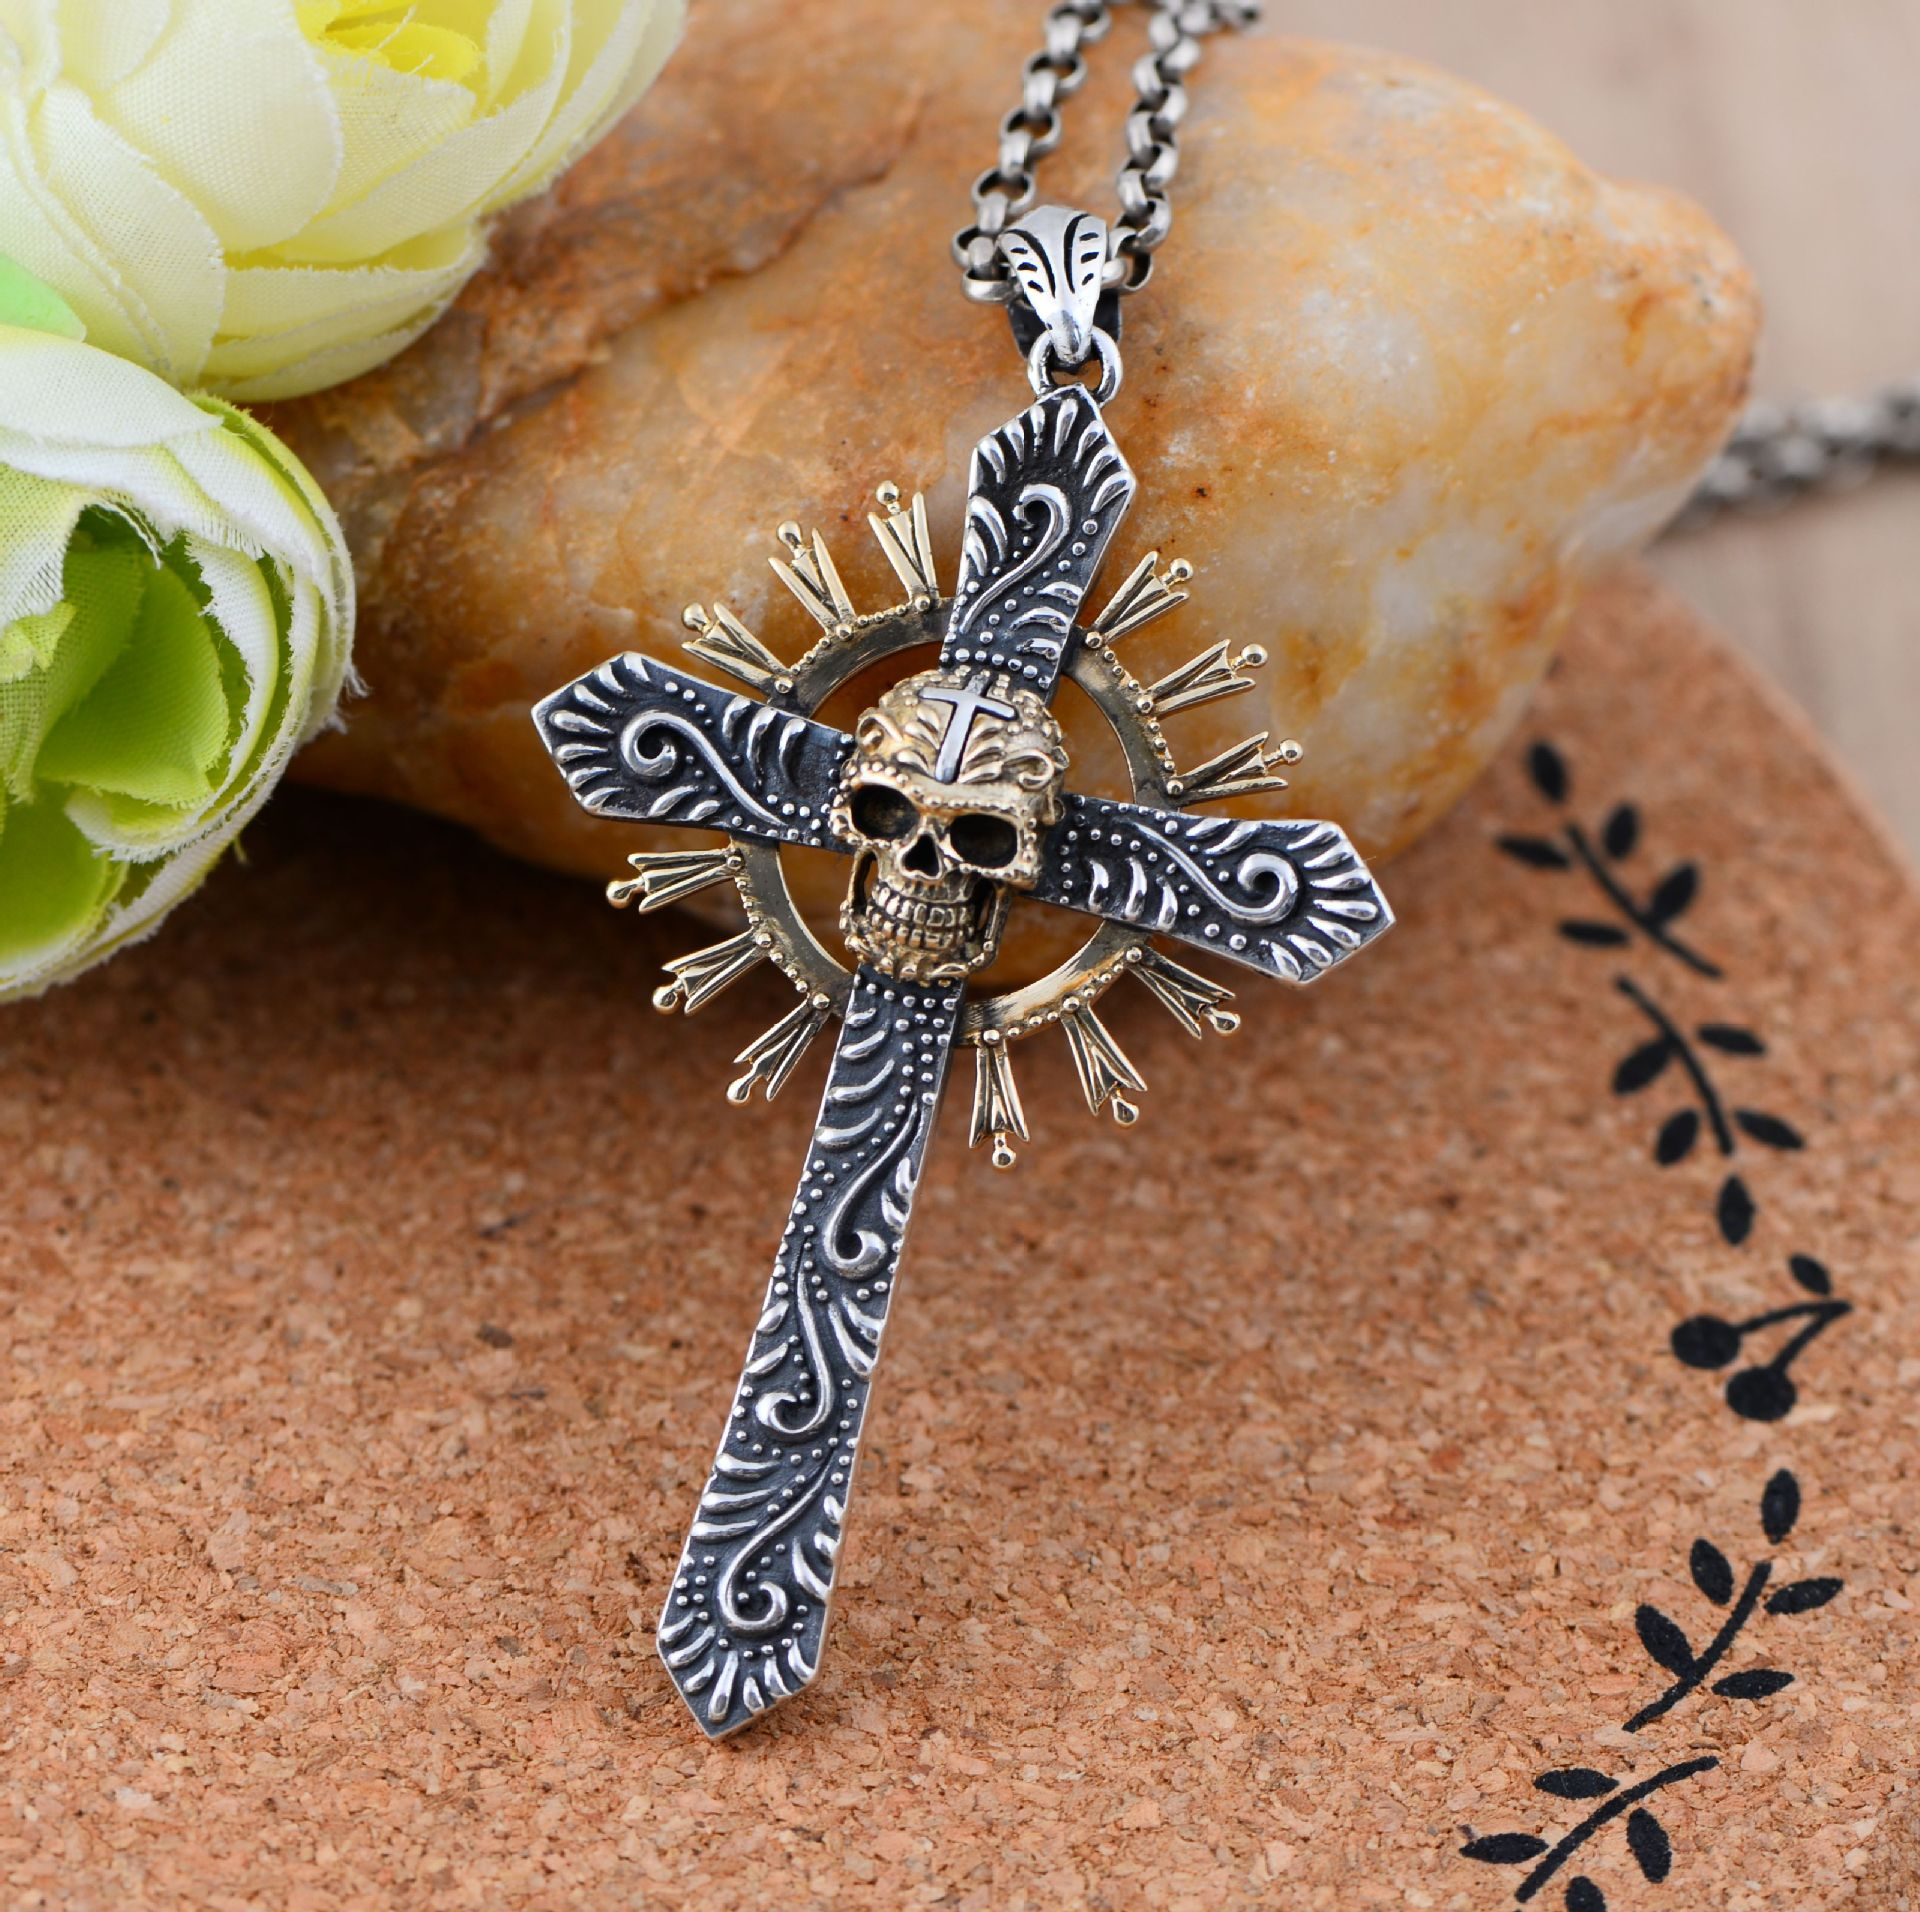 Black silver jewelry wholesale 925 Sterling Silver Thailand import Cross Skull Pendant 046730w men's personality marella платье марелла sede 0316 черный 44 чёрный